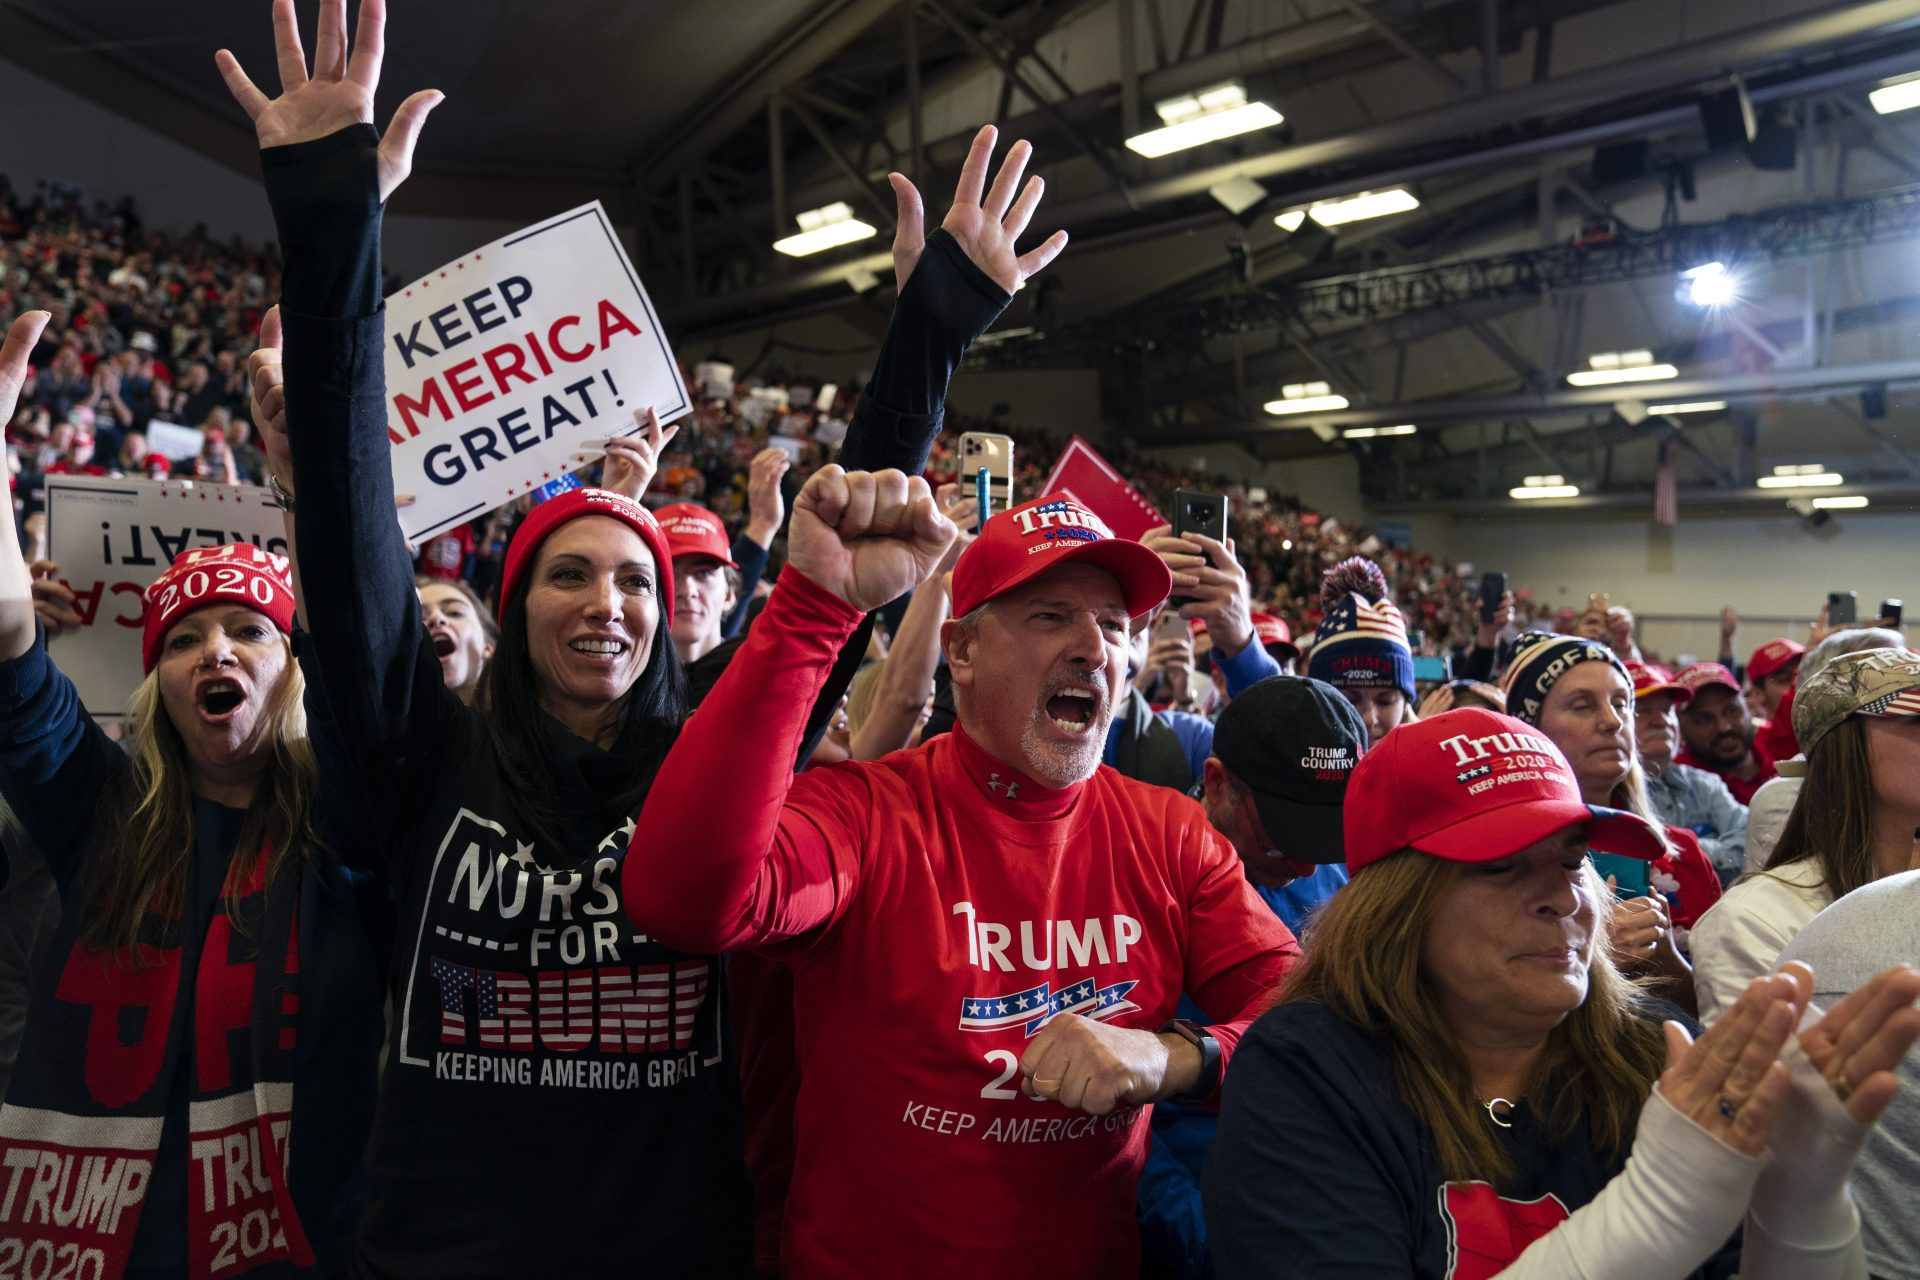 Supporters of President Donald Trump cheer as he speaks at a campaign rally at the Wildwoods Convention Center Oceanfront, Tuesday, Jan. 28, 2020, in Wildwood, N.J.